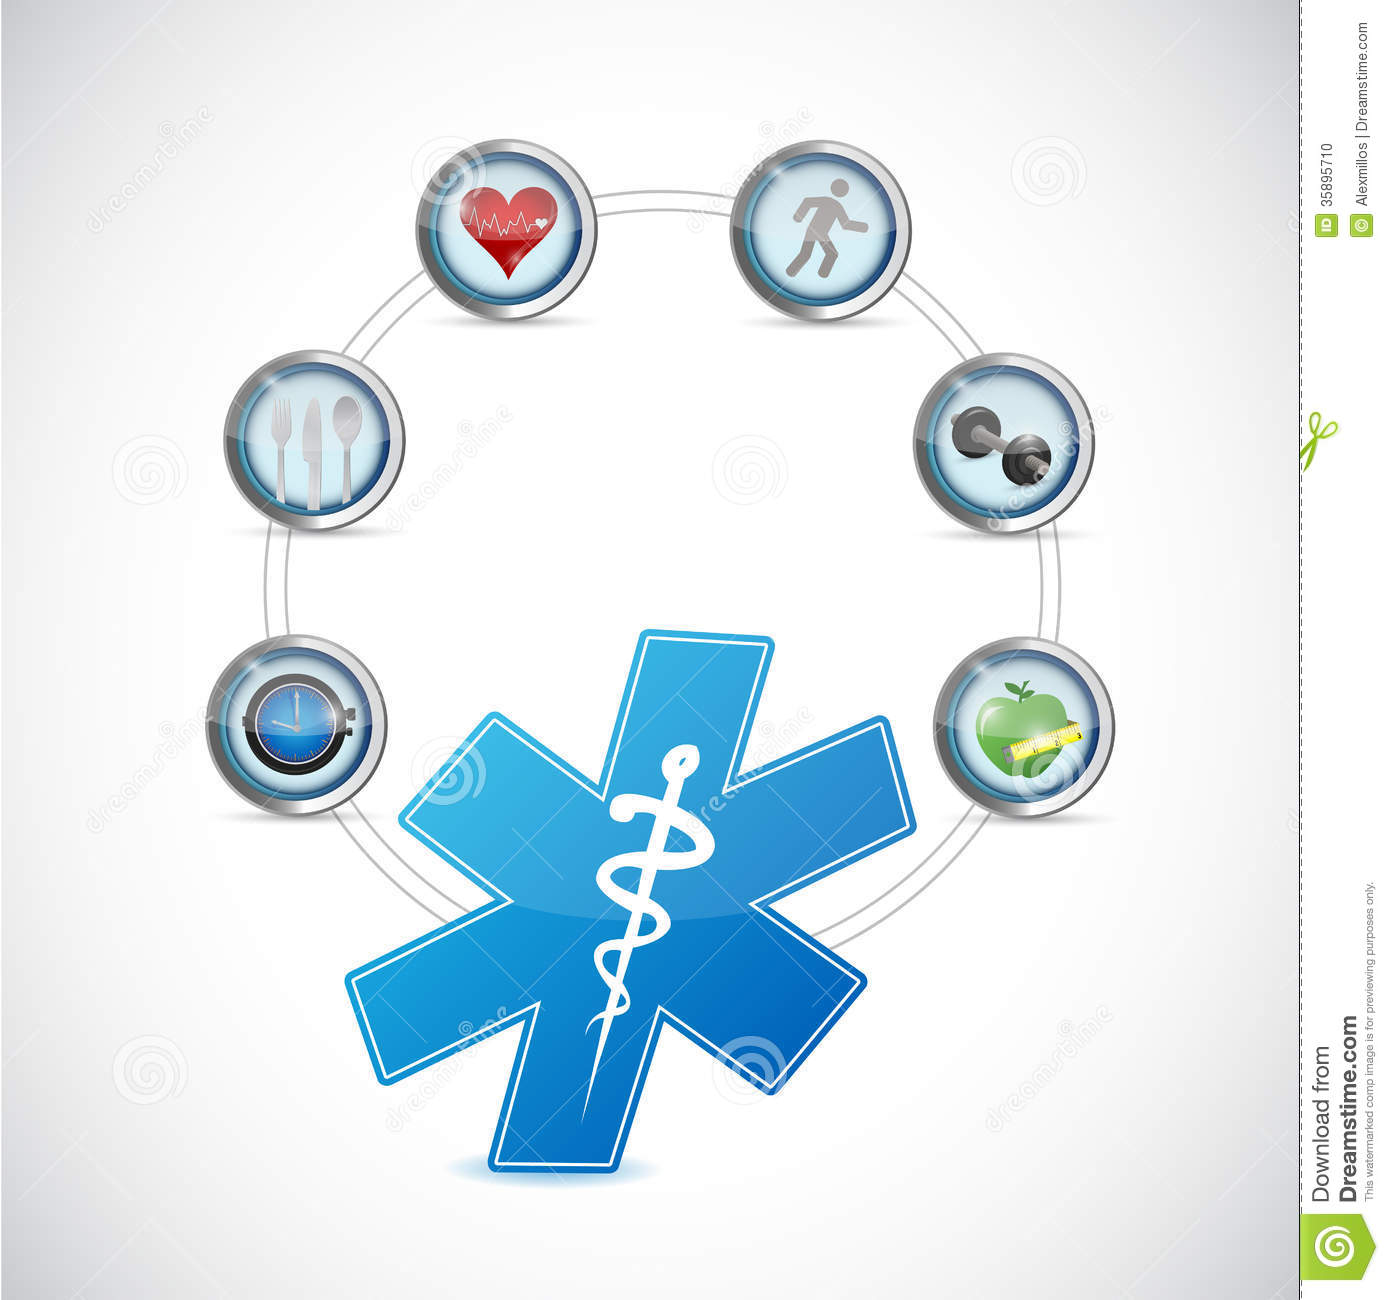 Medical Symbol Health Care Diagram Illustration Stock